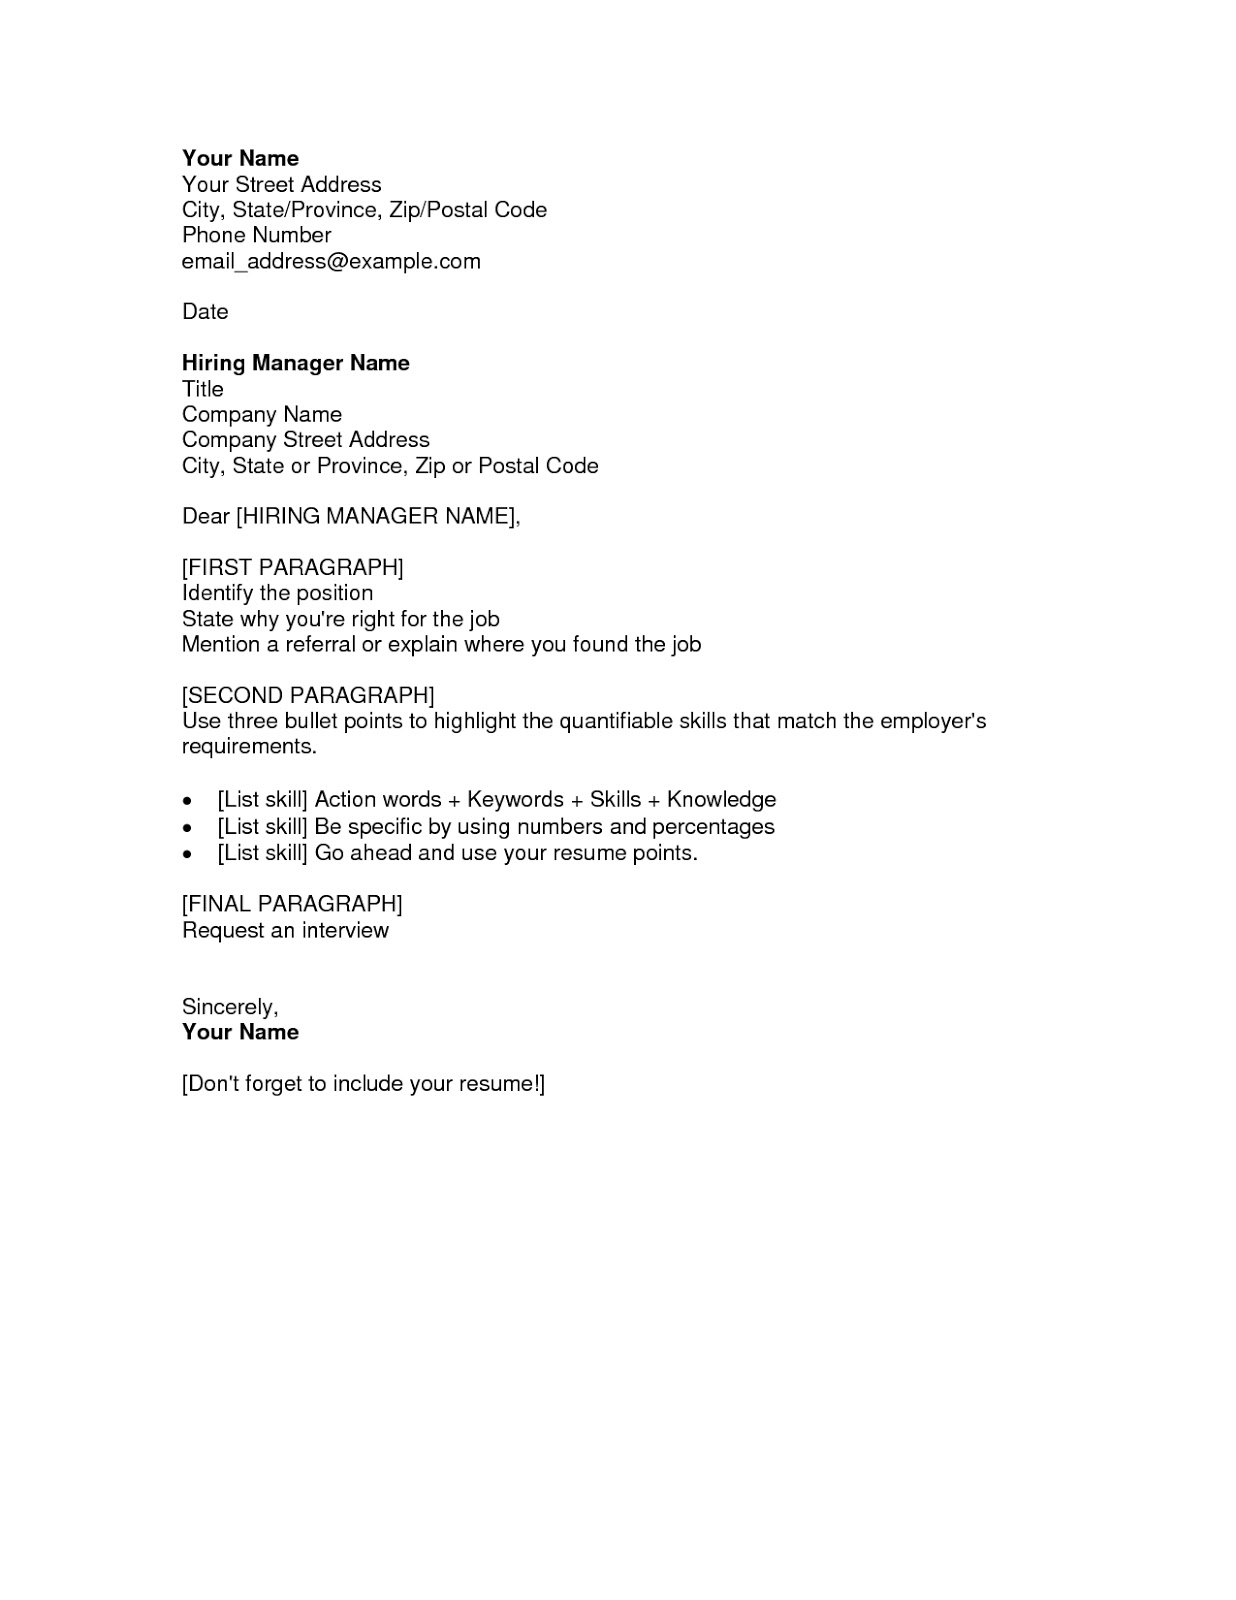 Resume Samples Online Free Cover Letter Samples For Resumes Sample Resumes